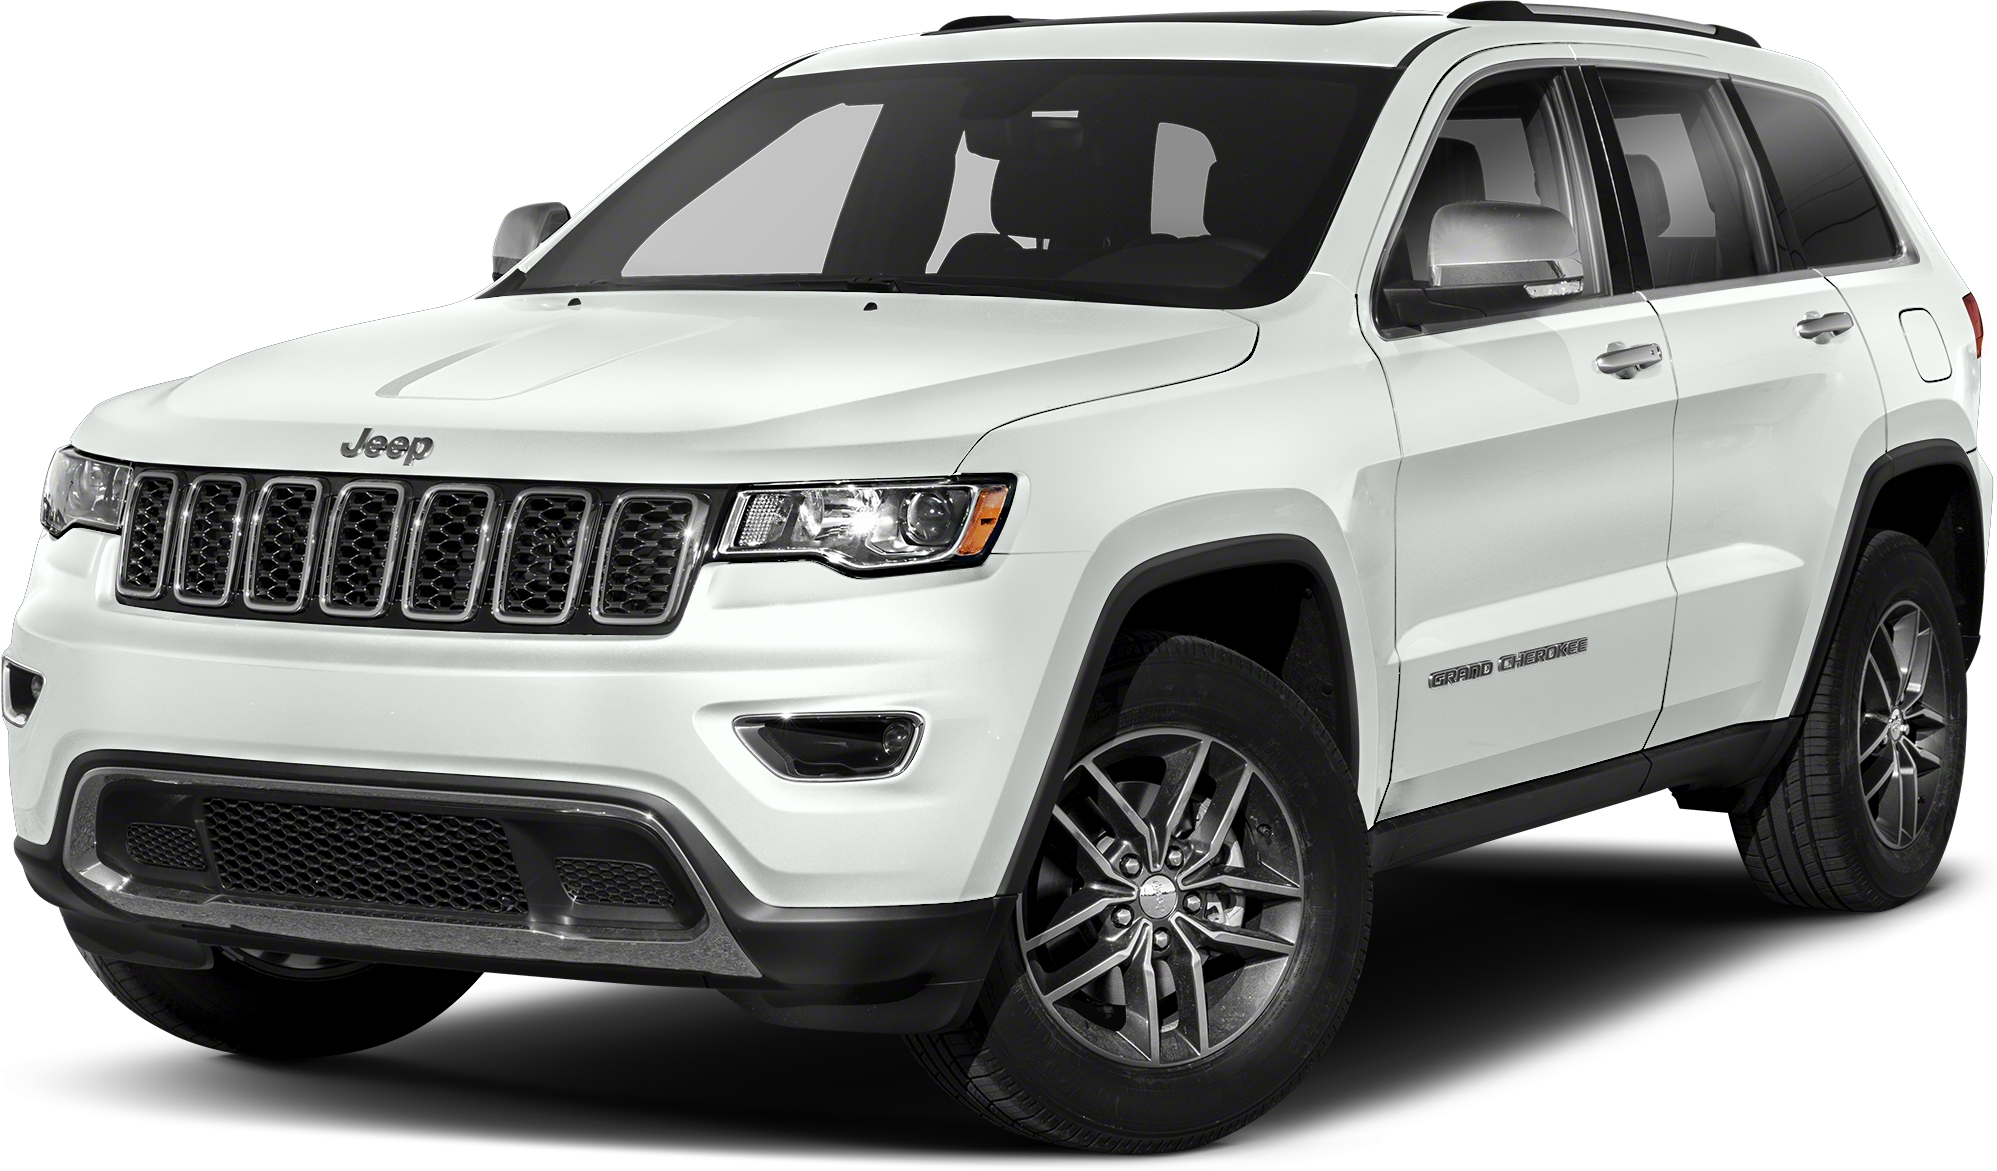 2017 jeep grand cherokee limited 4x4 st paul mn 15580897. Black Bedroom Furniture Sets. Home Design Ideas